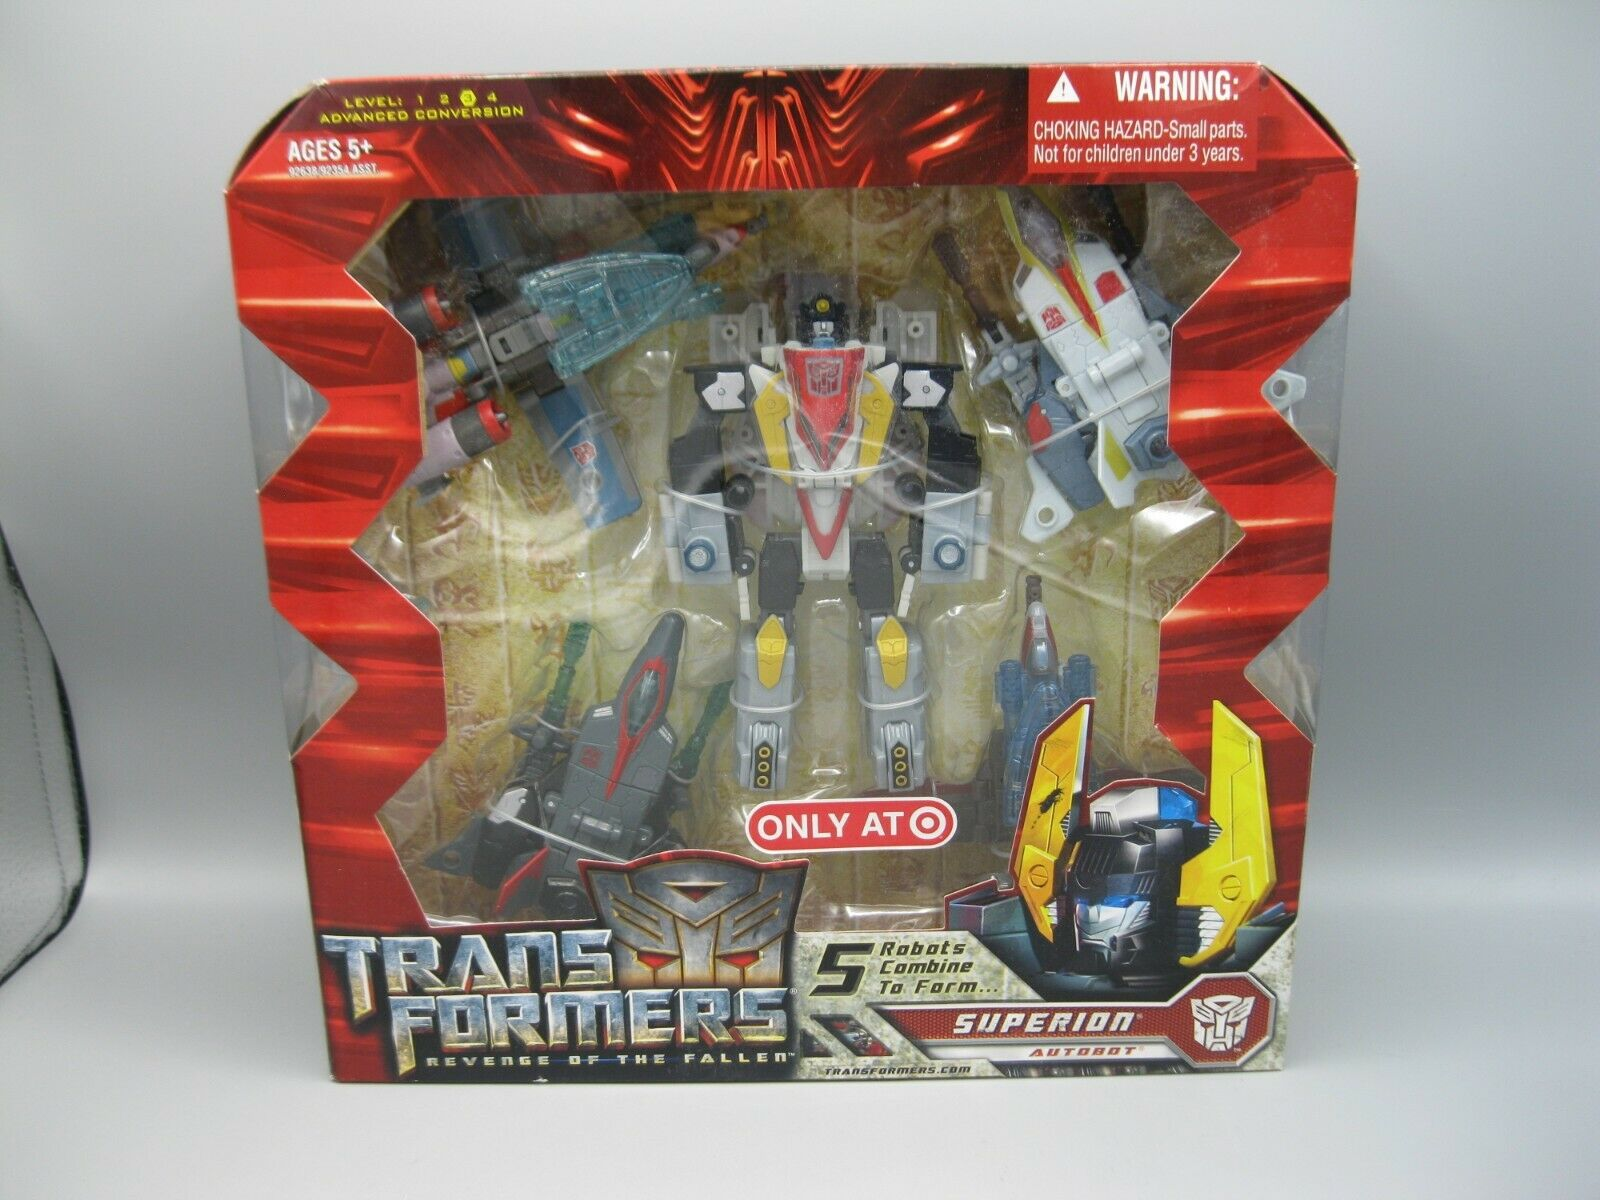 2008 Hasbro Transformers Revenge of the Fallen Superion Autobot only at Target